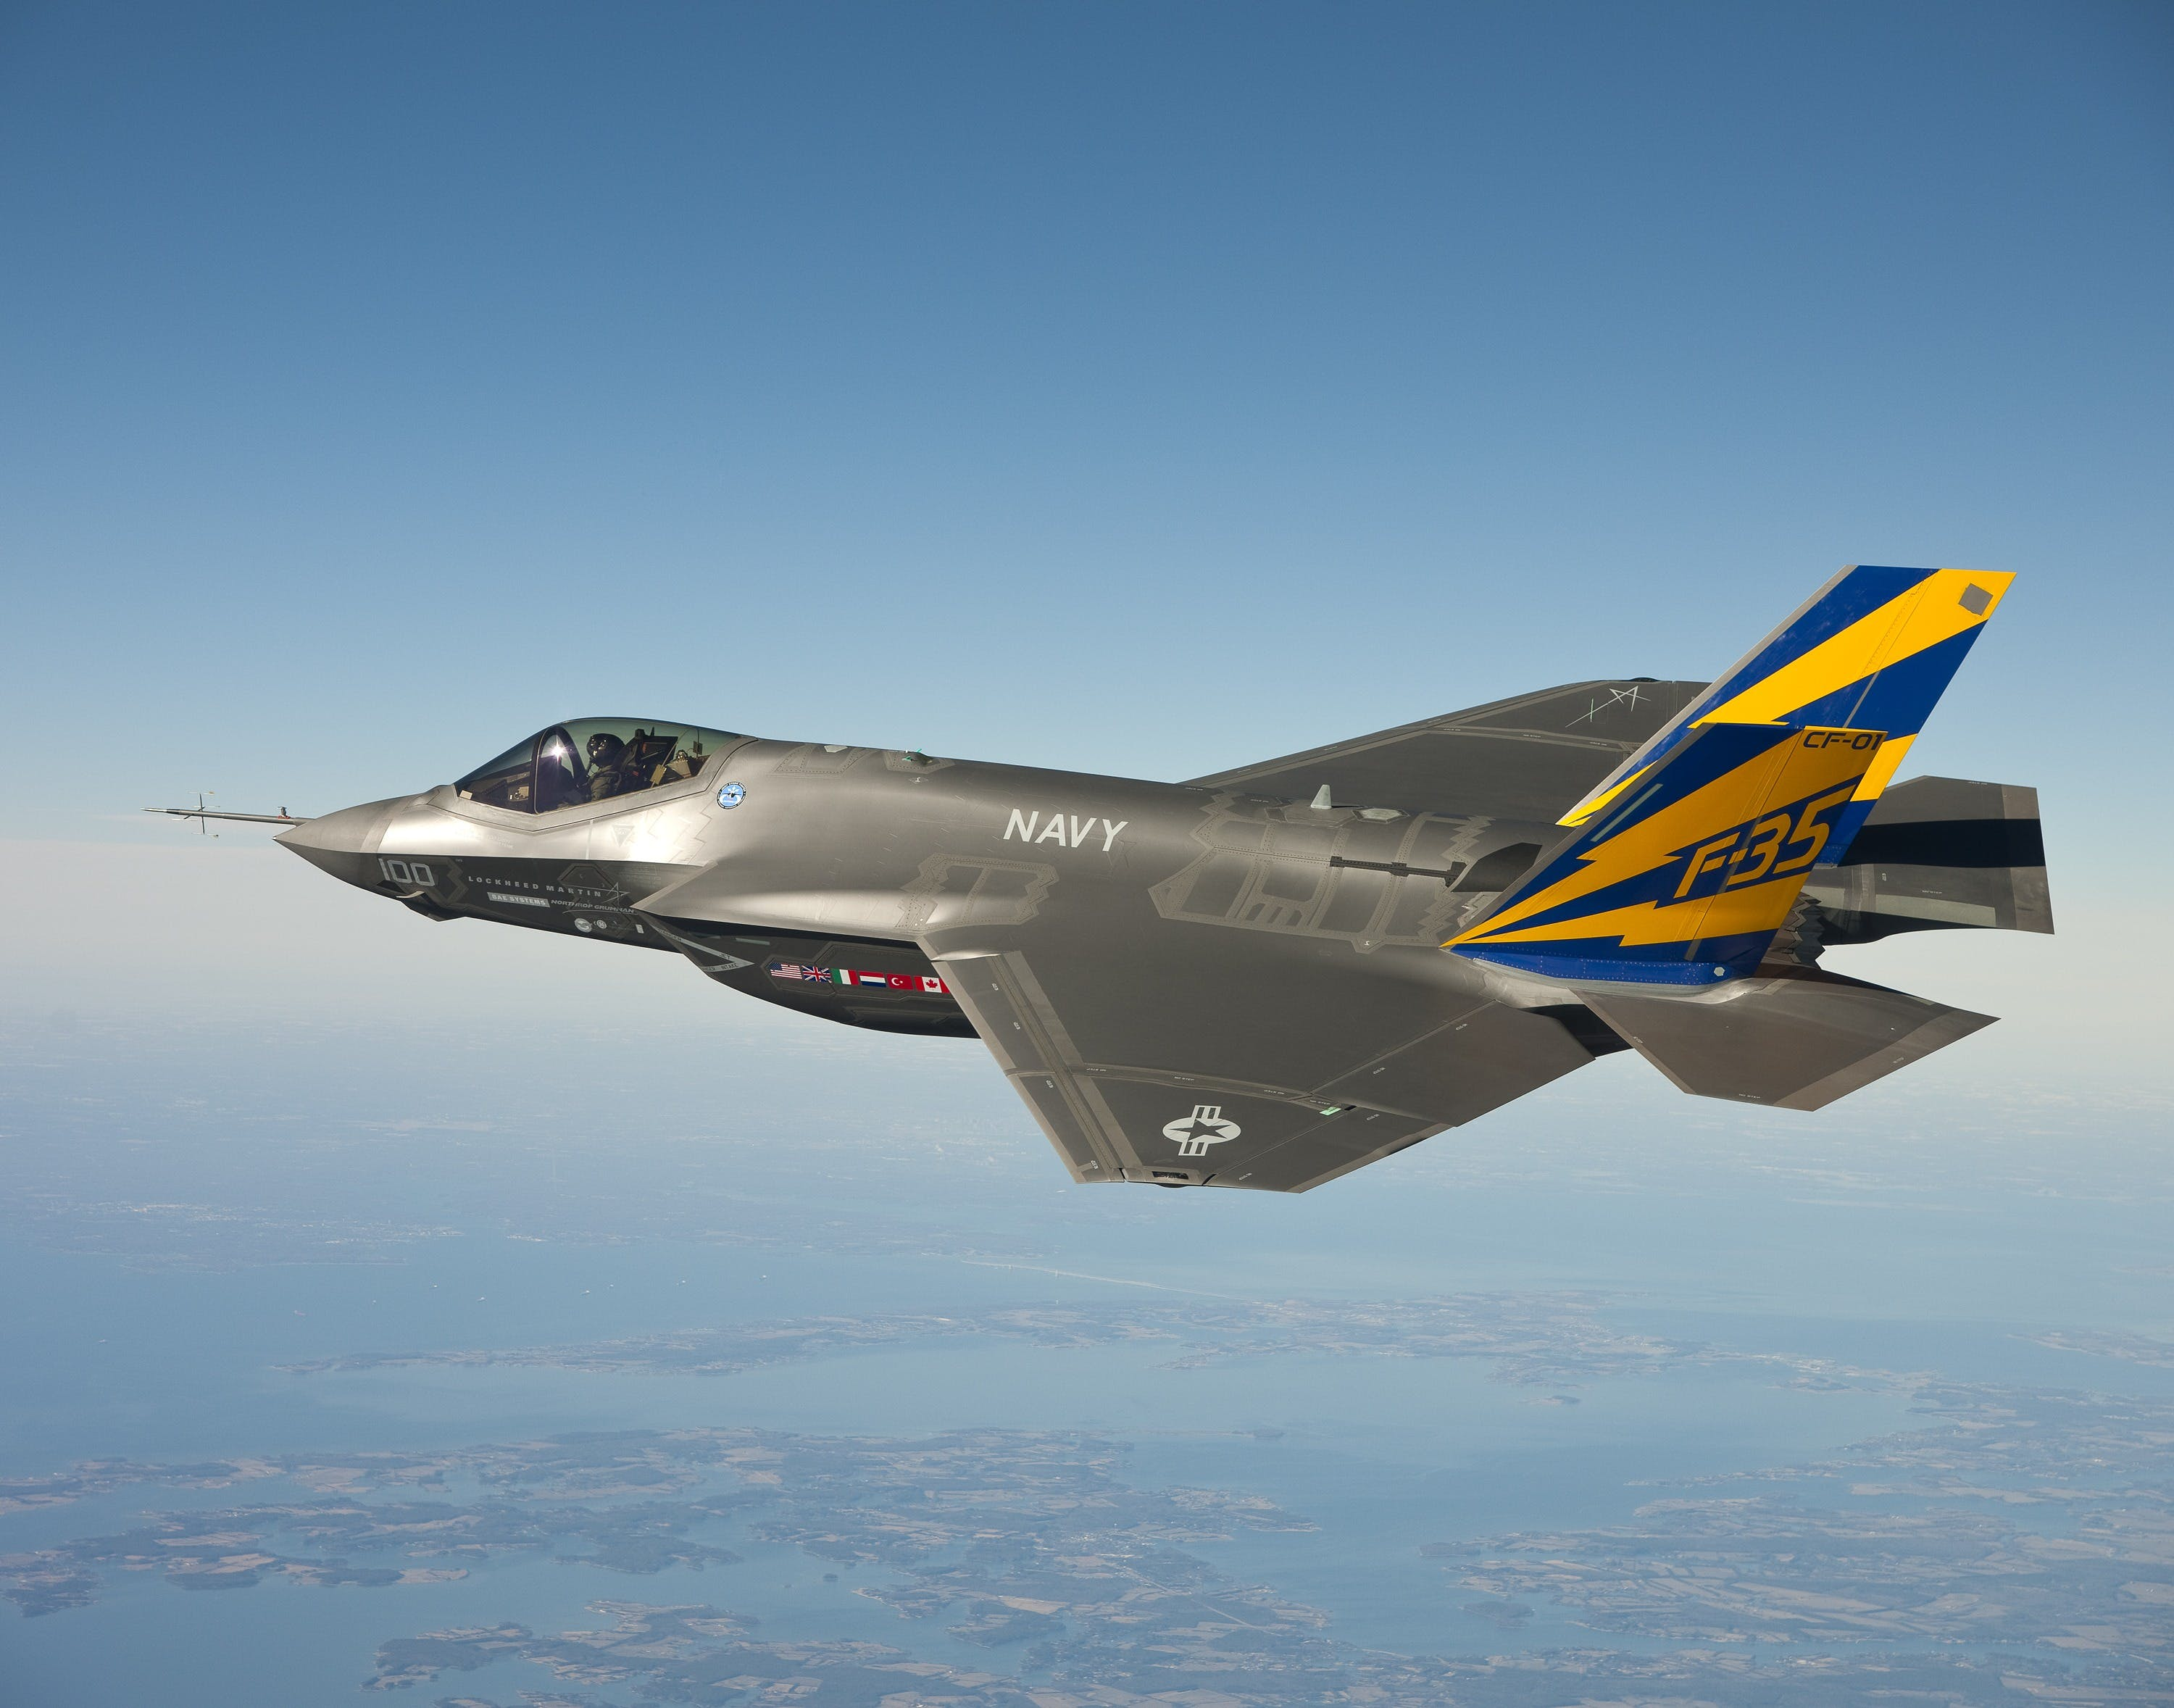 Grey Blue and Yellow Navy F 35 Fighter Plane Flying on Clear Blue Sky